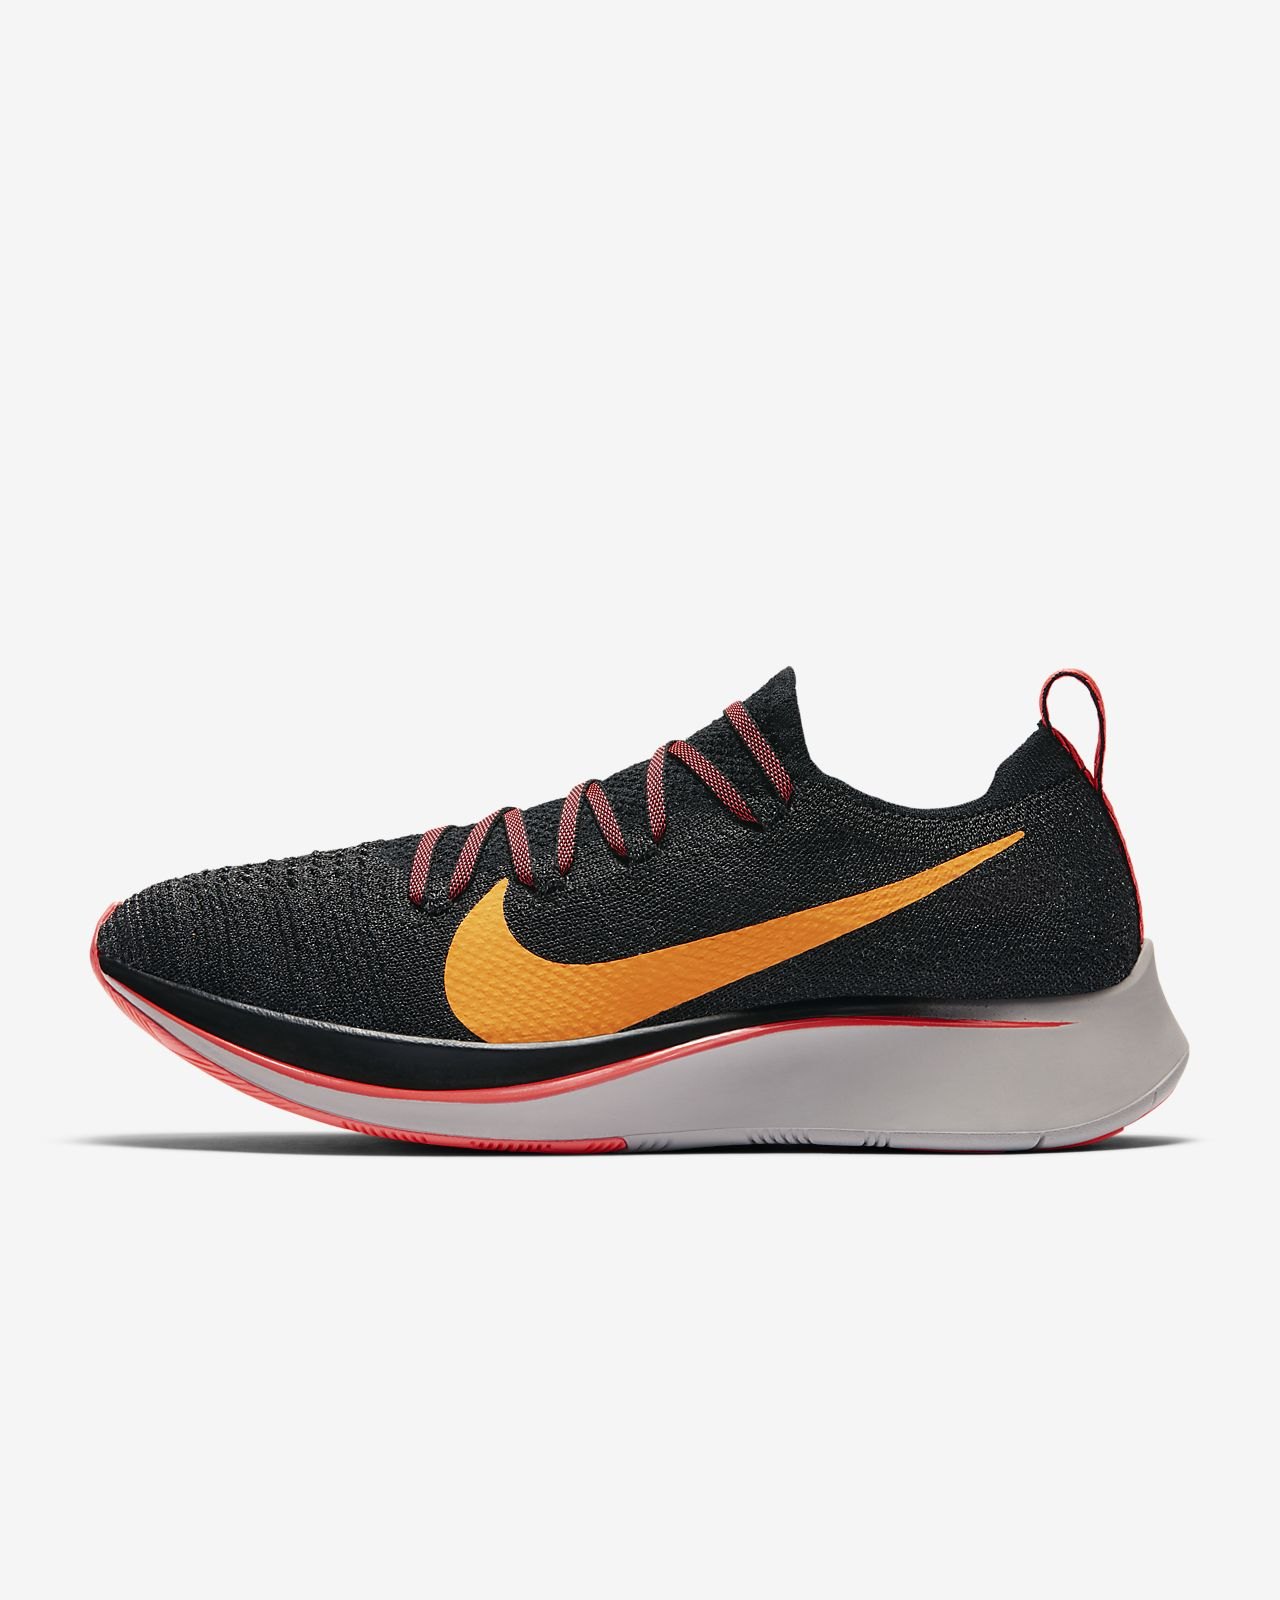 ede7a8be5f44 Chaussure de running Nike Zoom Fly Flyknit pour Femme. Nike.com CA